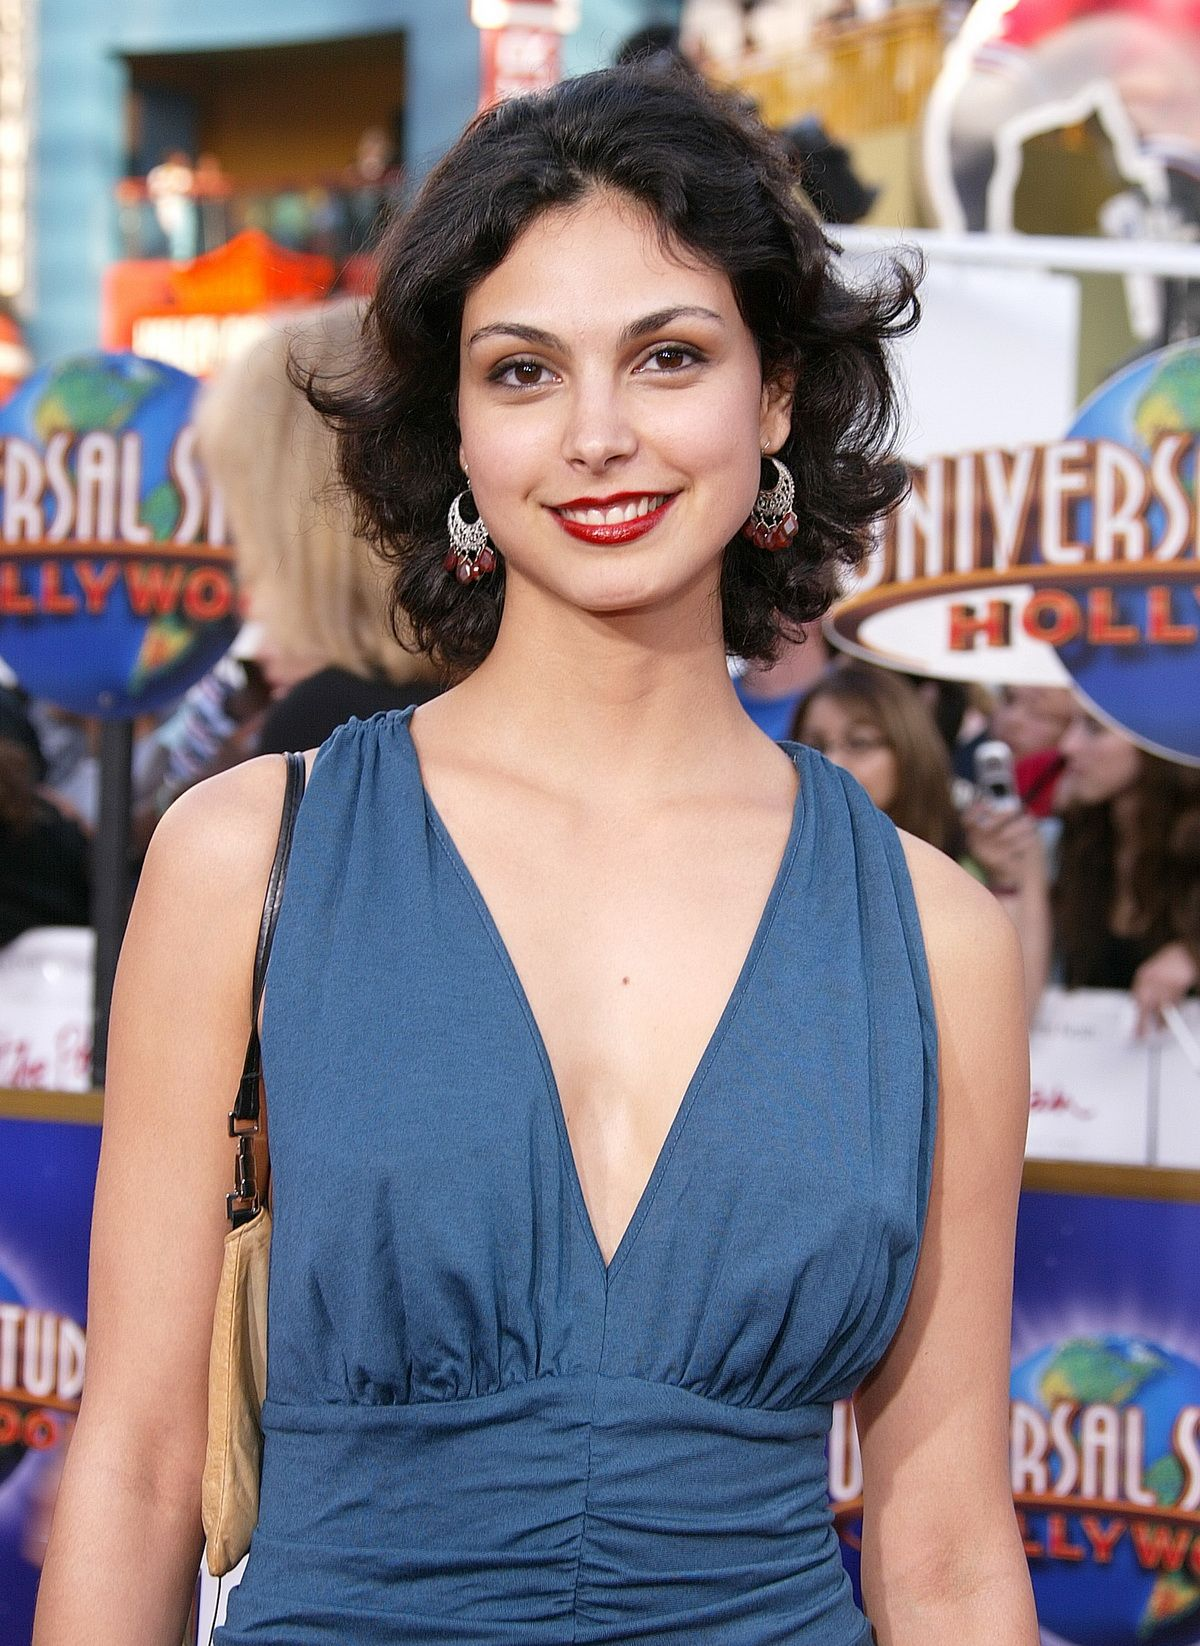 Morena Baccarin - Full size - Page 2